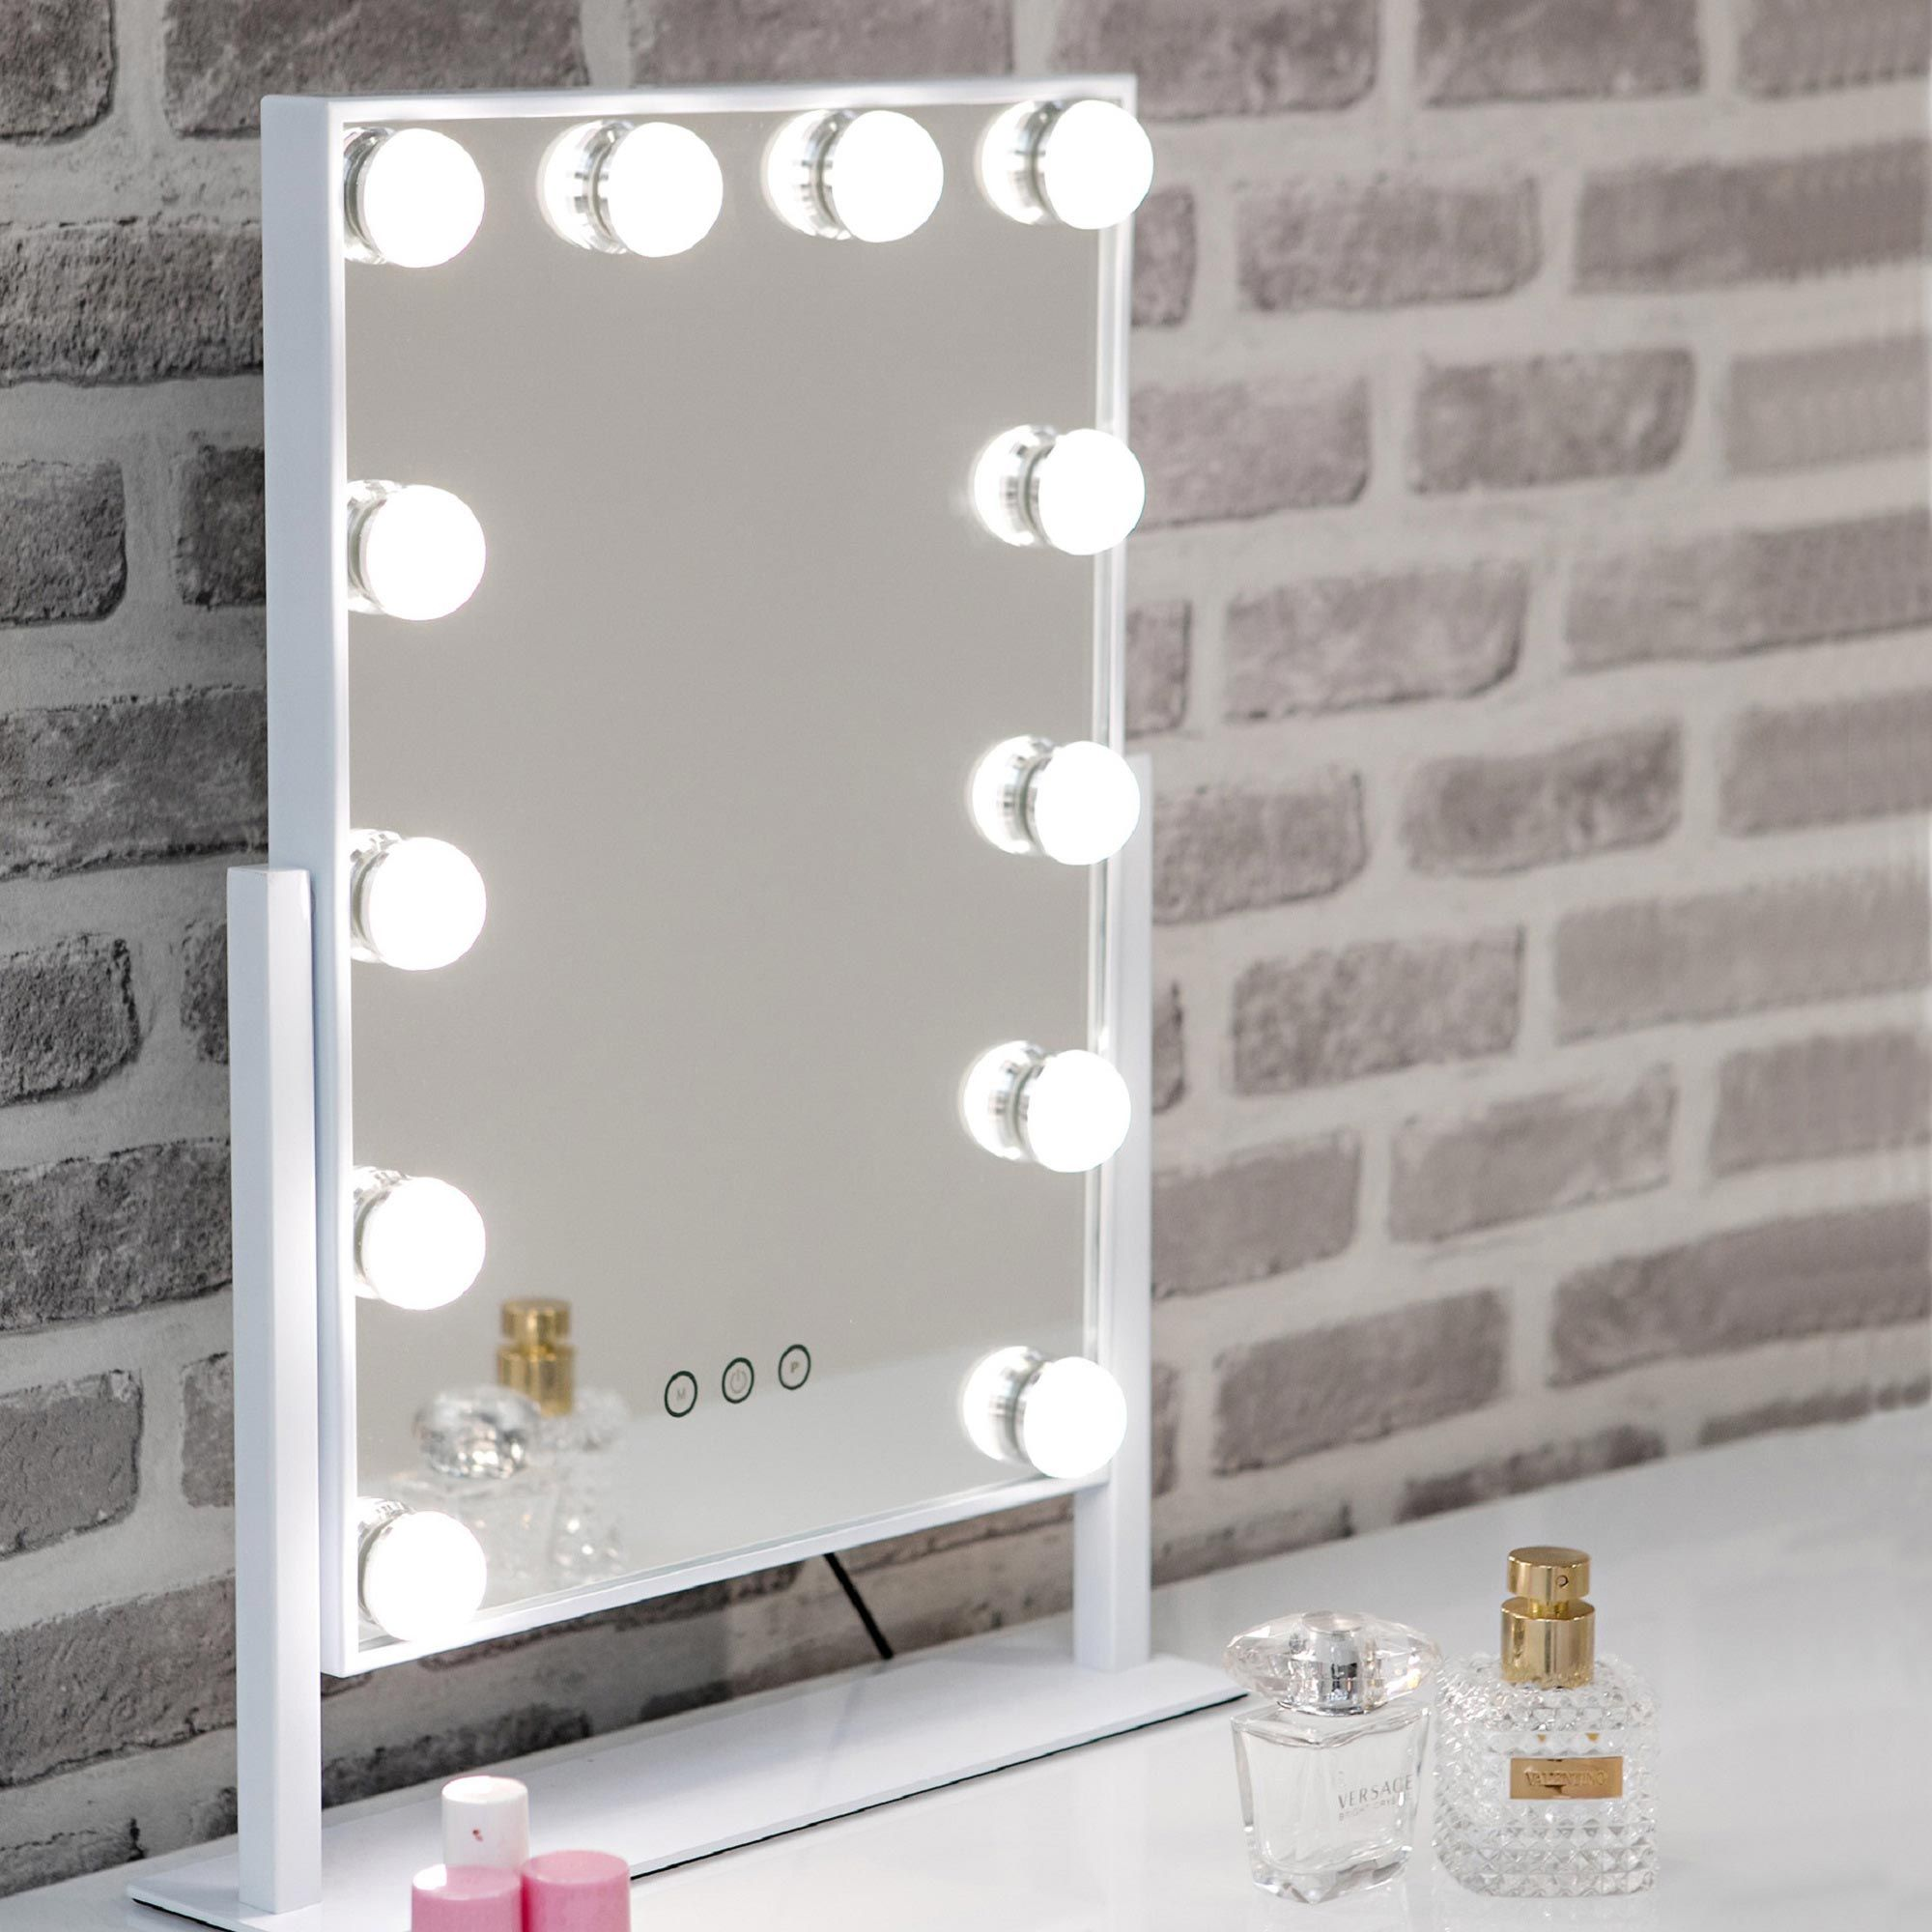 Hollywood Glamour Vanity Mirror Shop Online Great Value Meubles